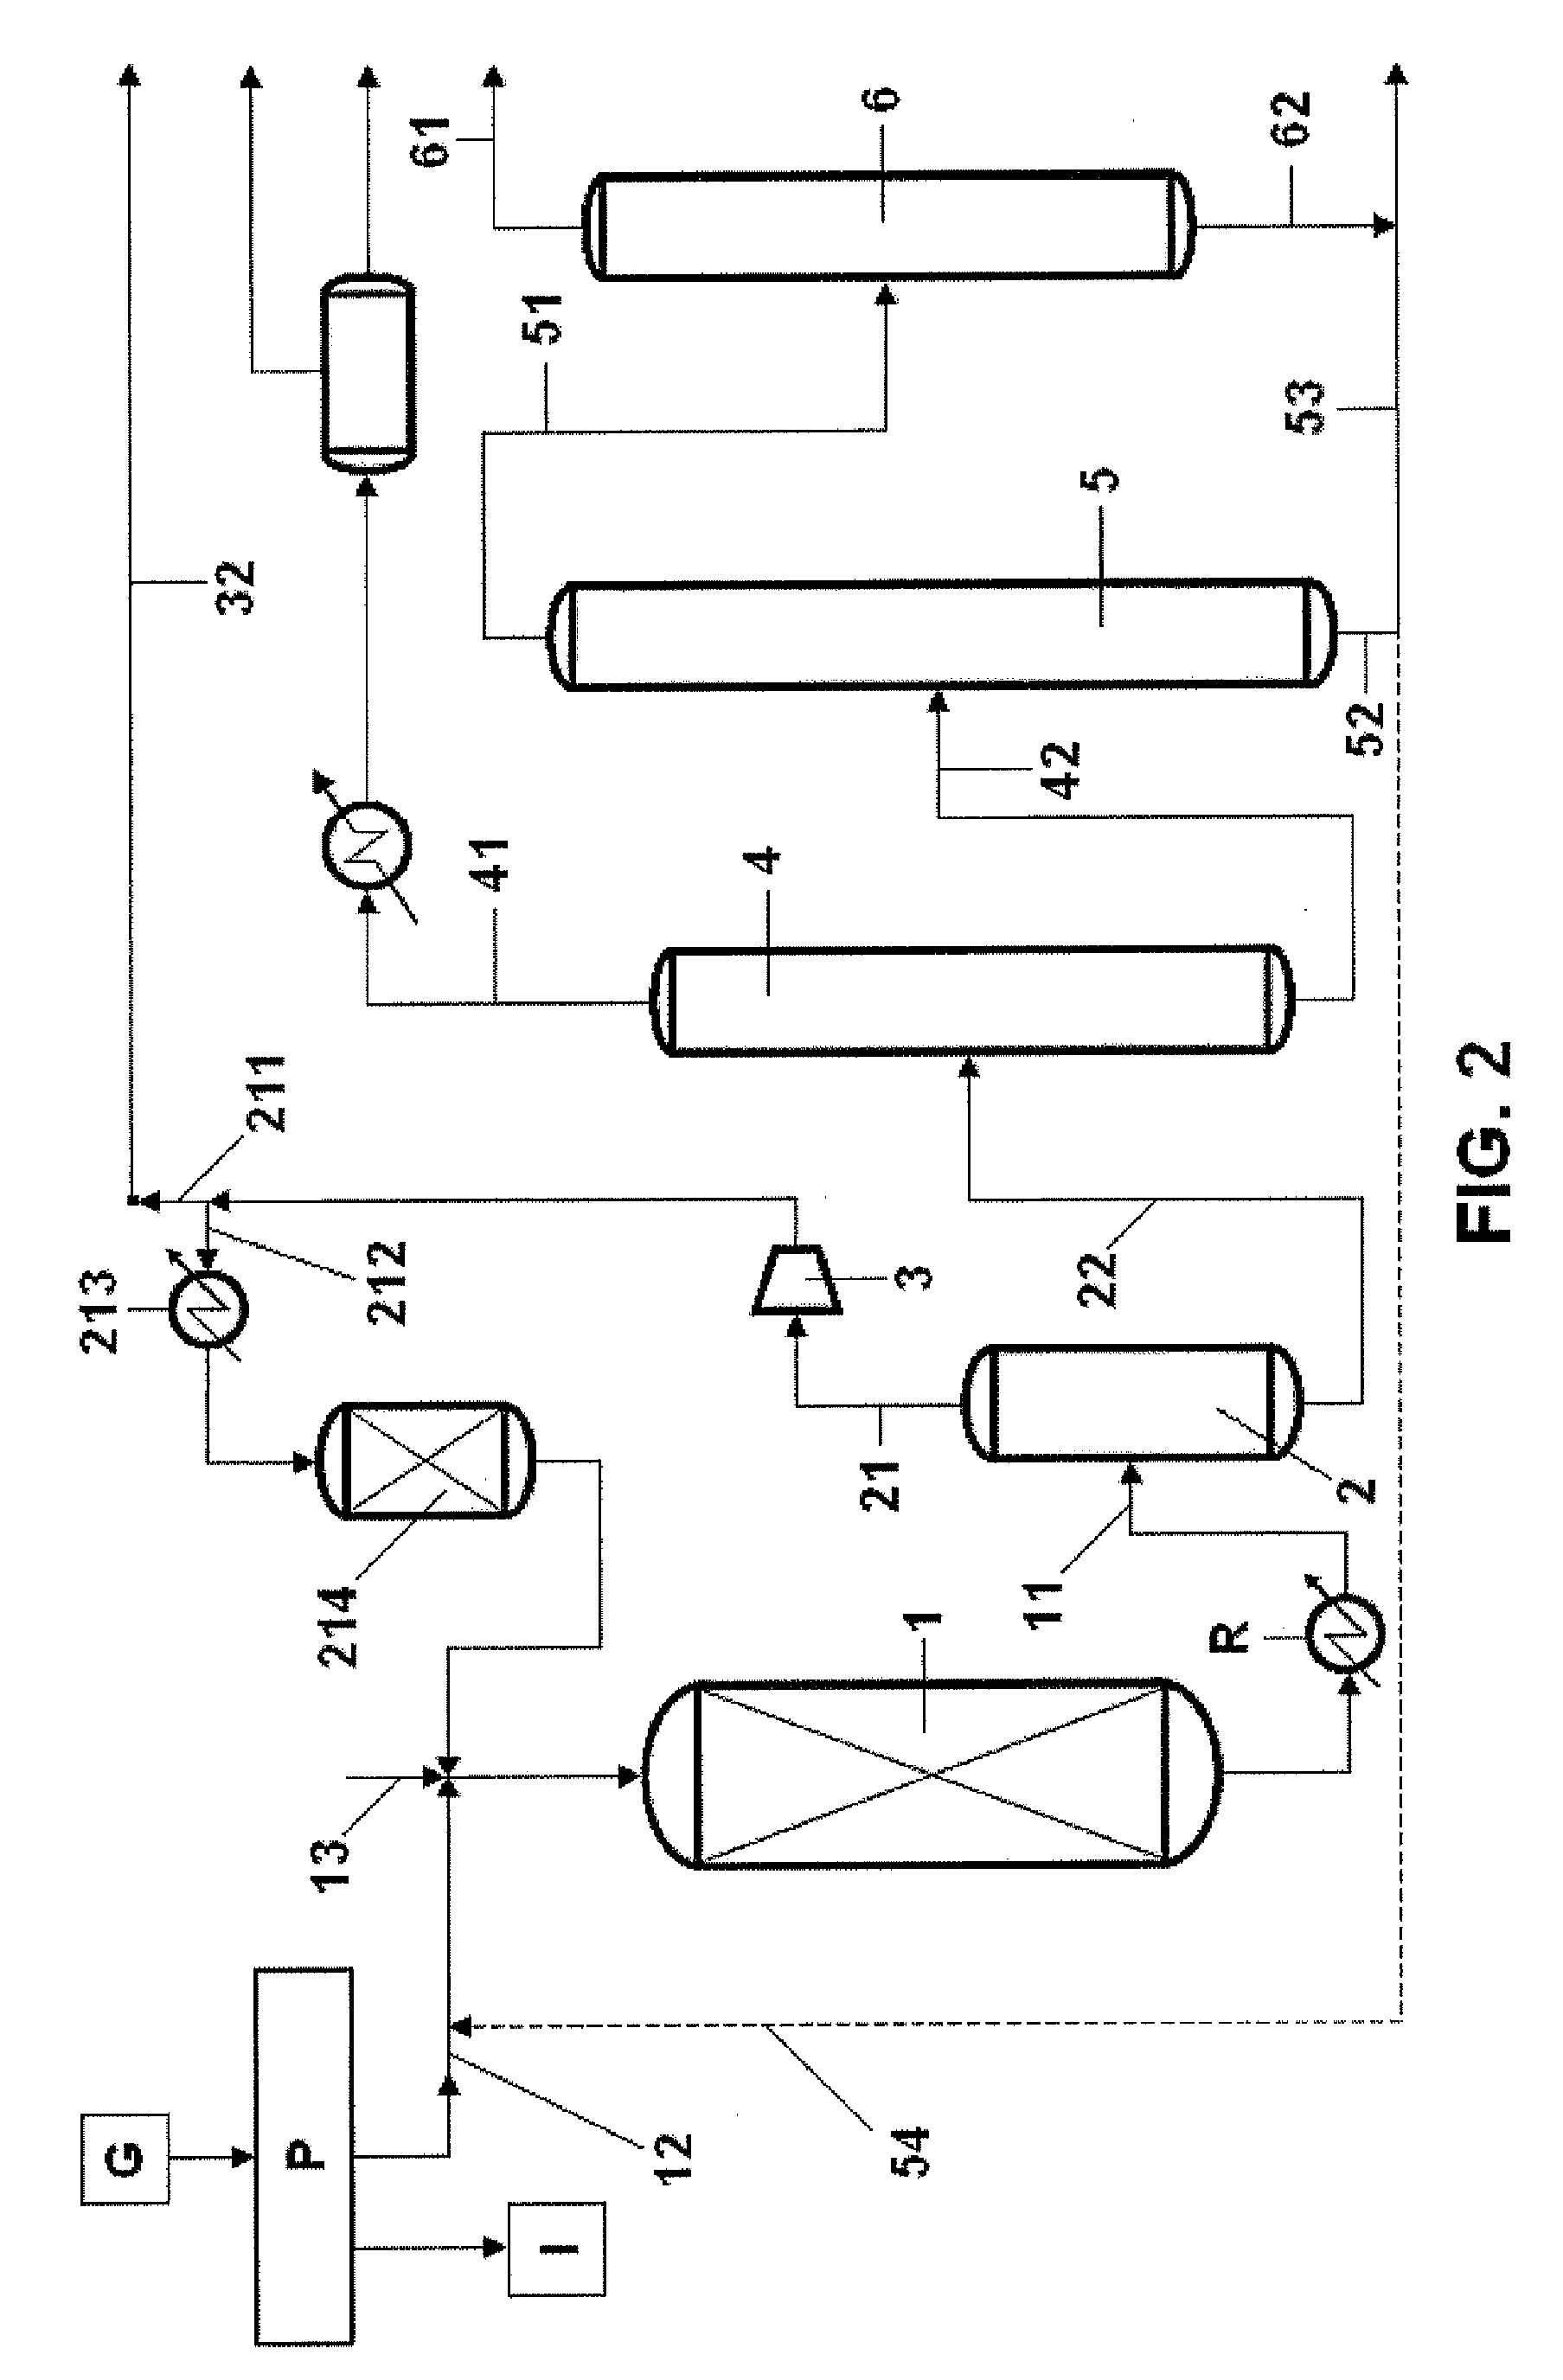 propylene phase diagram yamaha g9 wiring patent ep2540692a2 production of glycol from